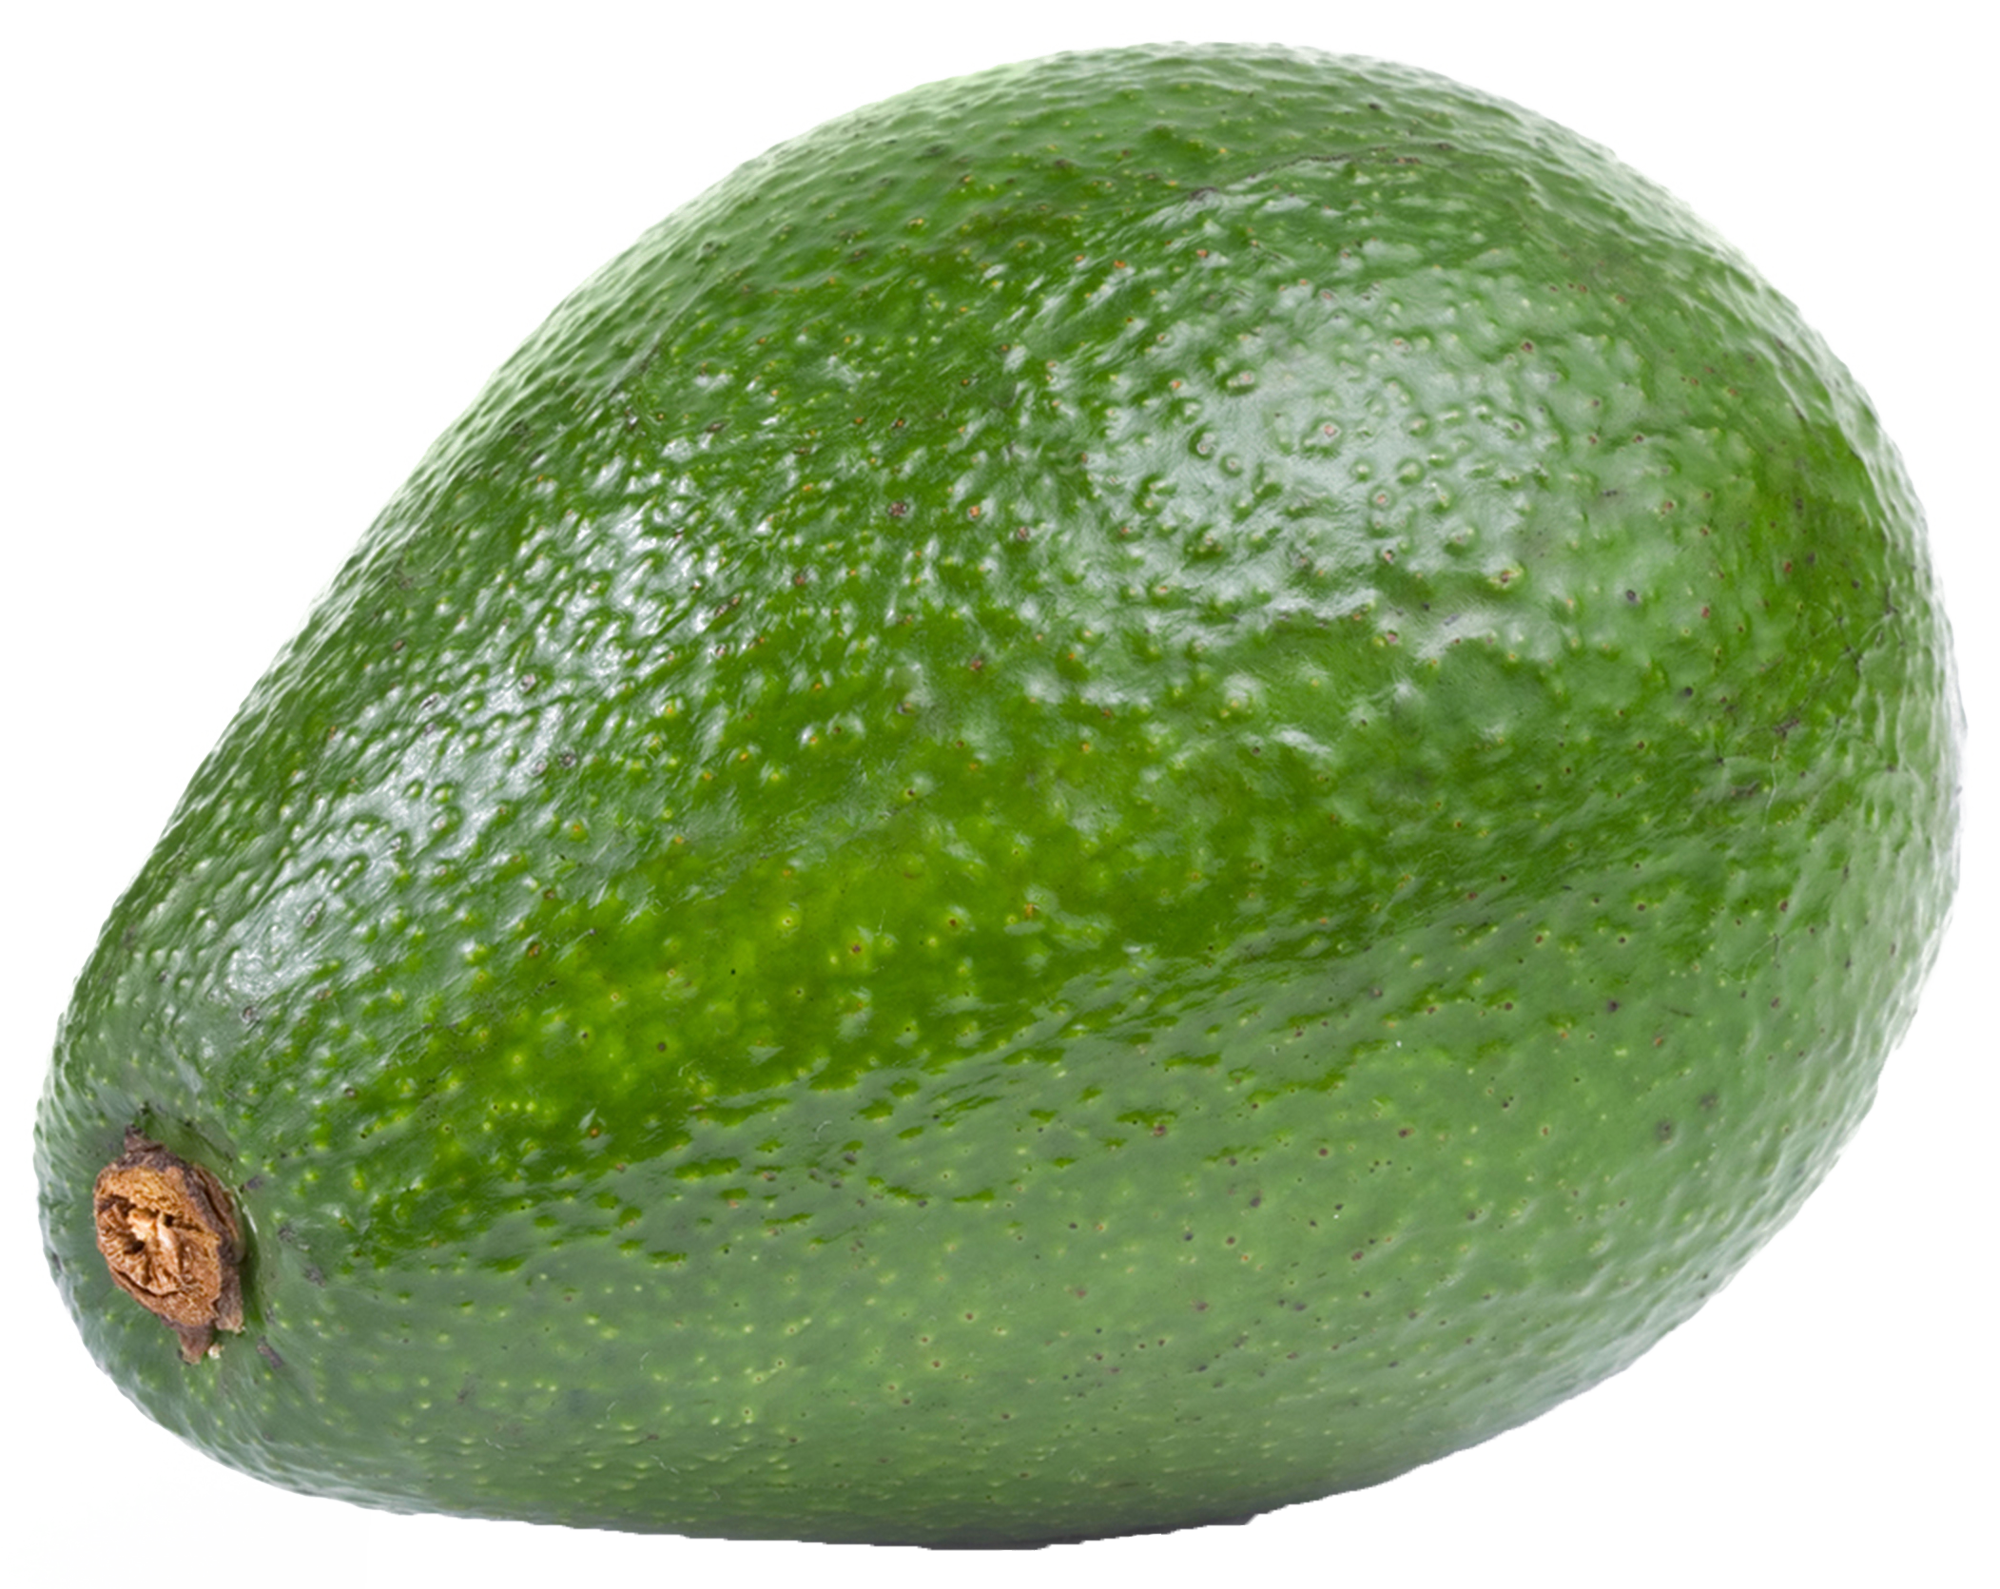 Avocado clipart large. Png gallery yopriceville high